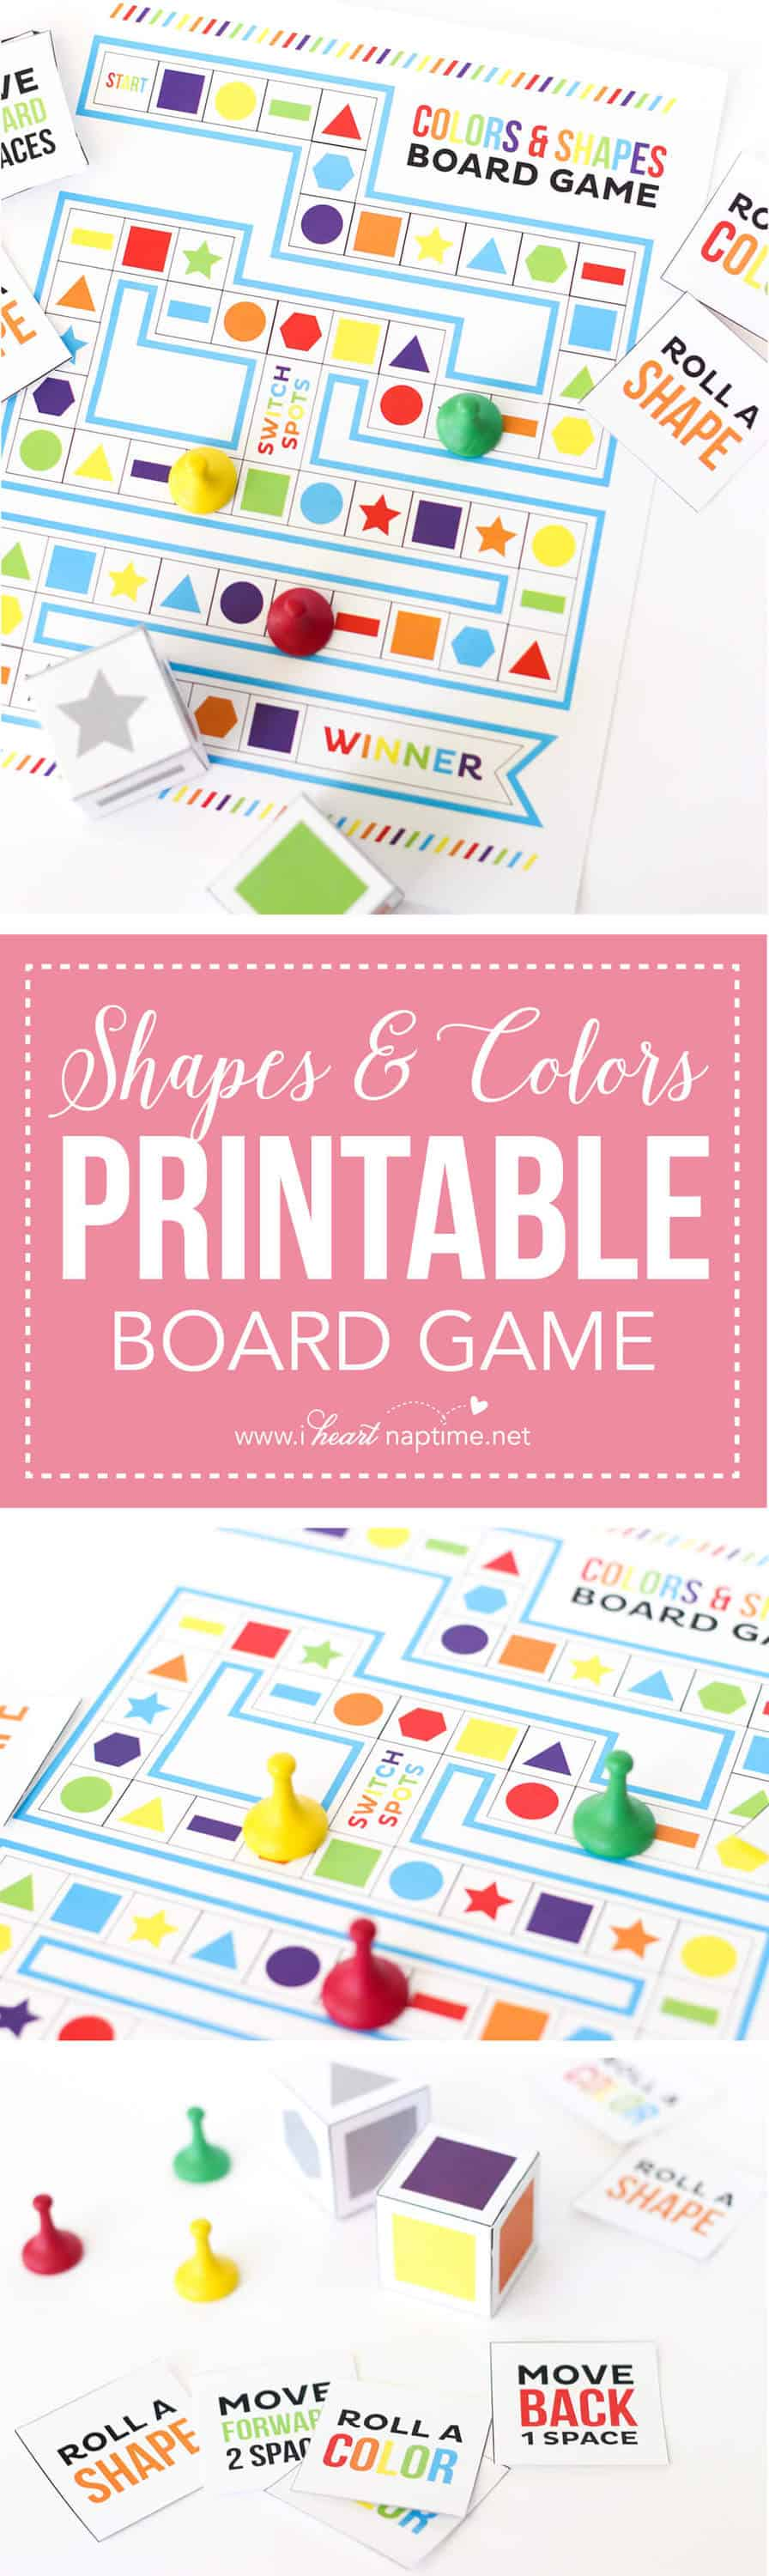 picture regarding Printable Board Games named Designs and Hues Printable Board Match - I Center Nap Period